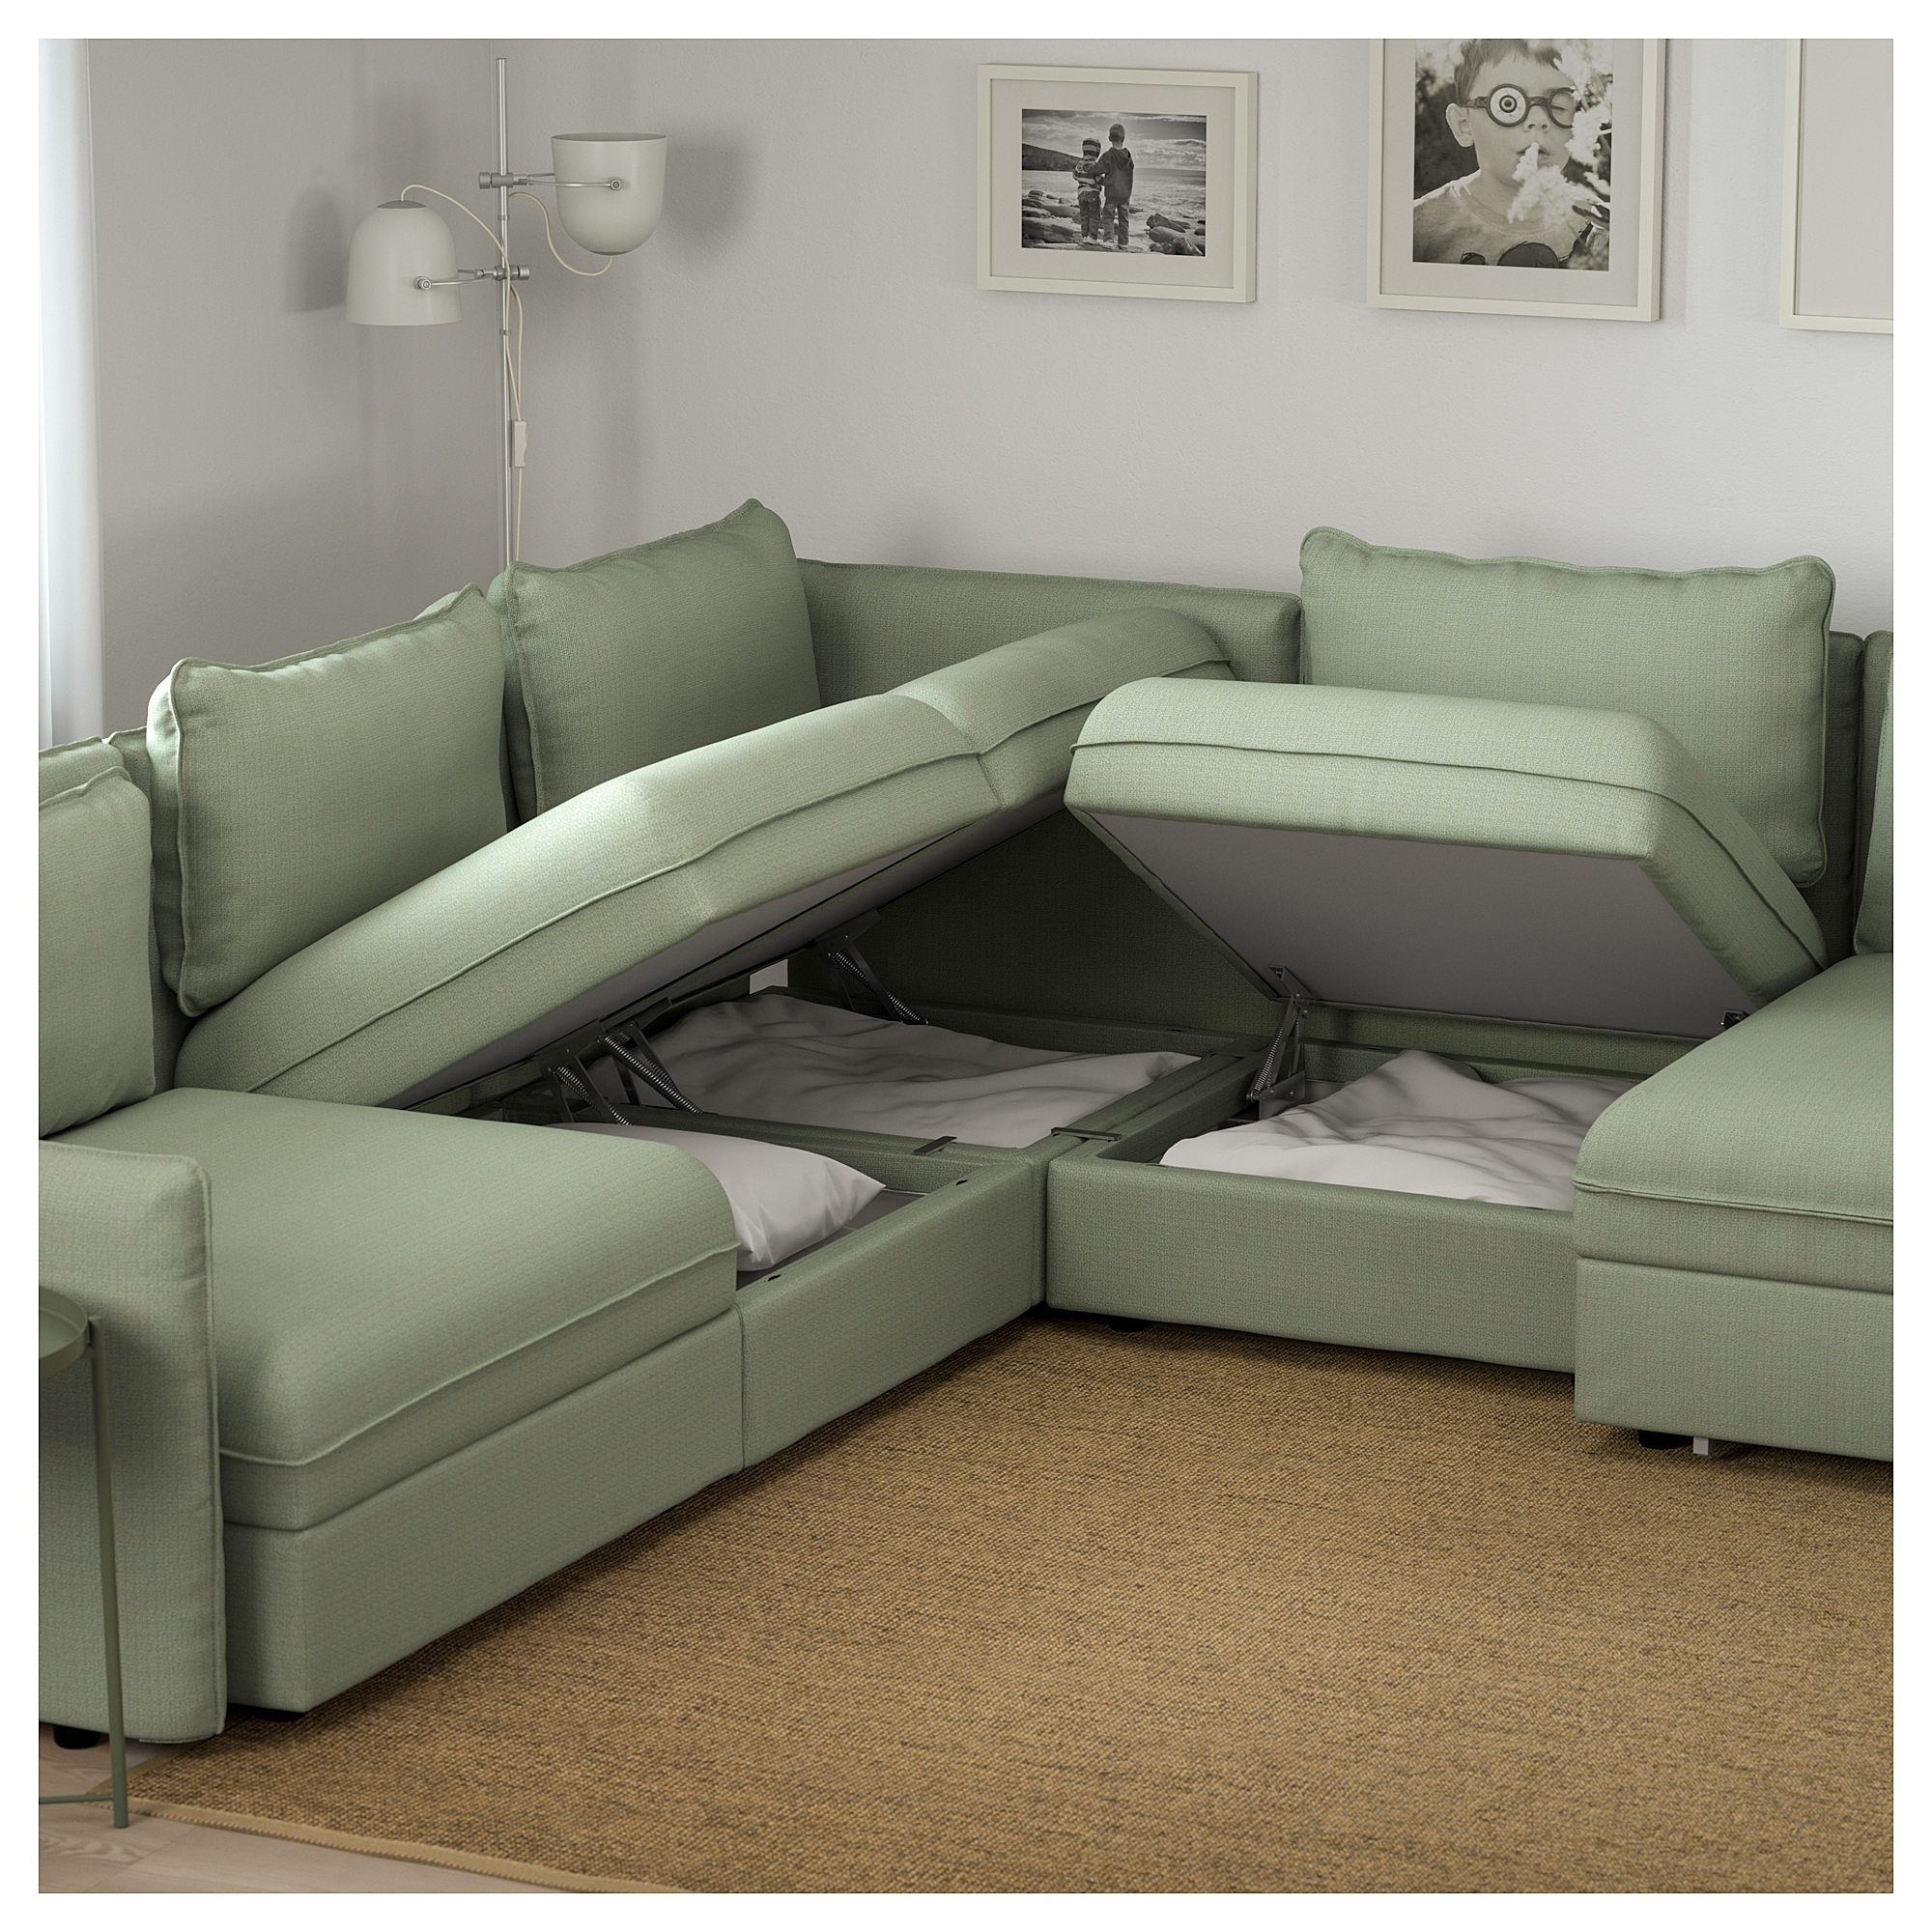 Vallentuna 6-Seat Corner Sofa With Bed Hillared Green - Ikea within Ikea Corner Sofas With Storage (Image 10 of 10)